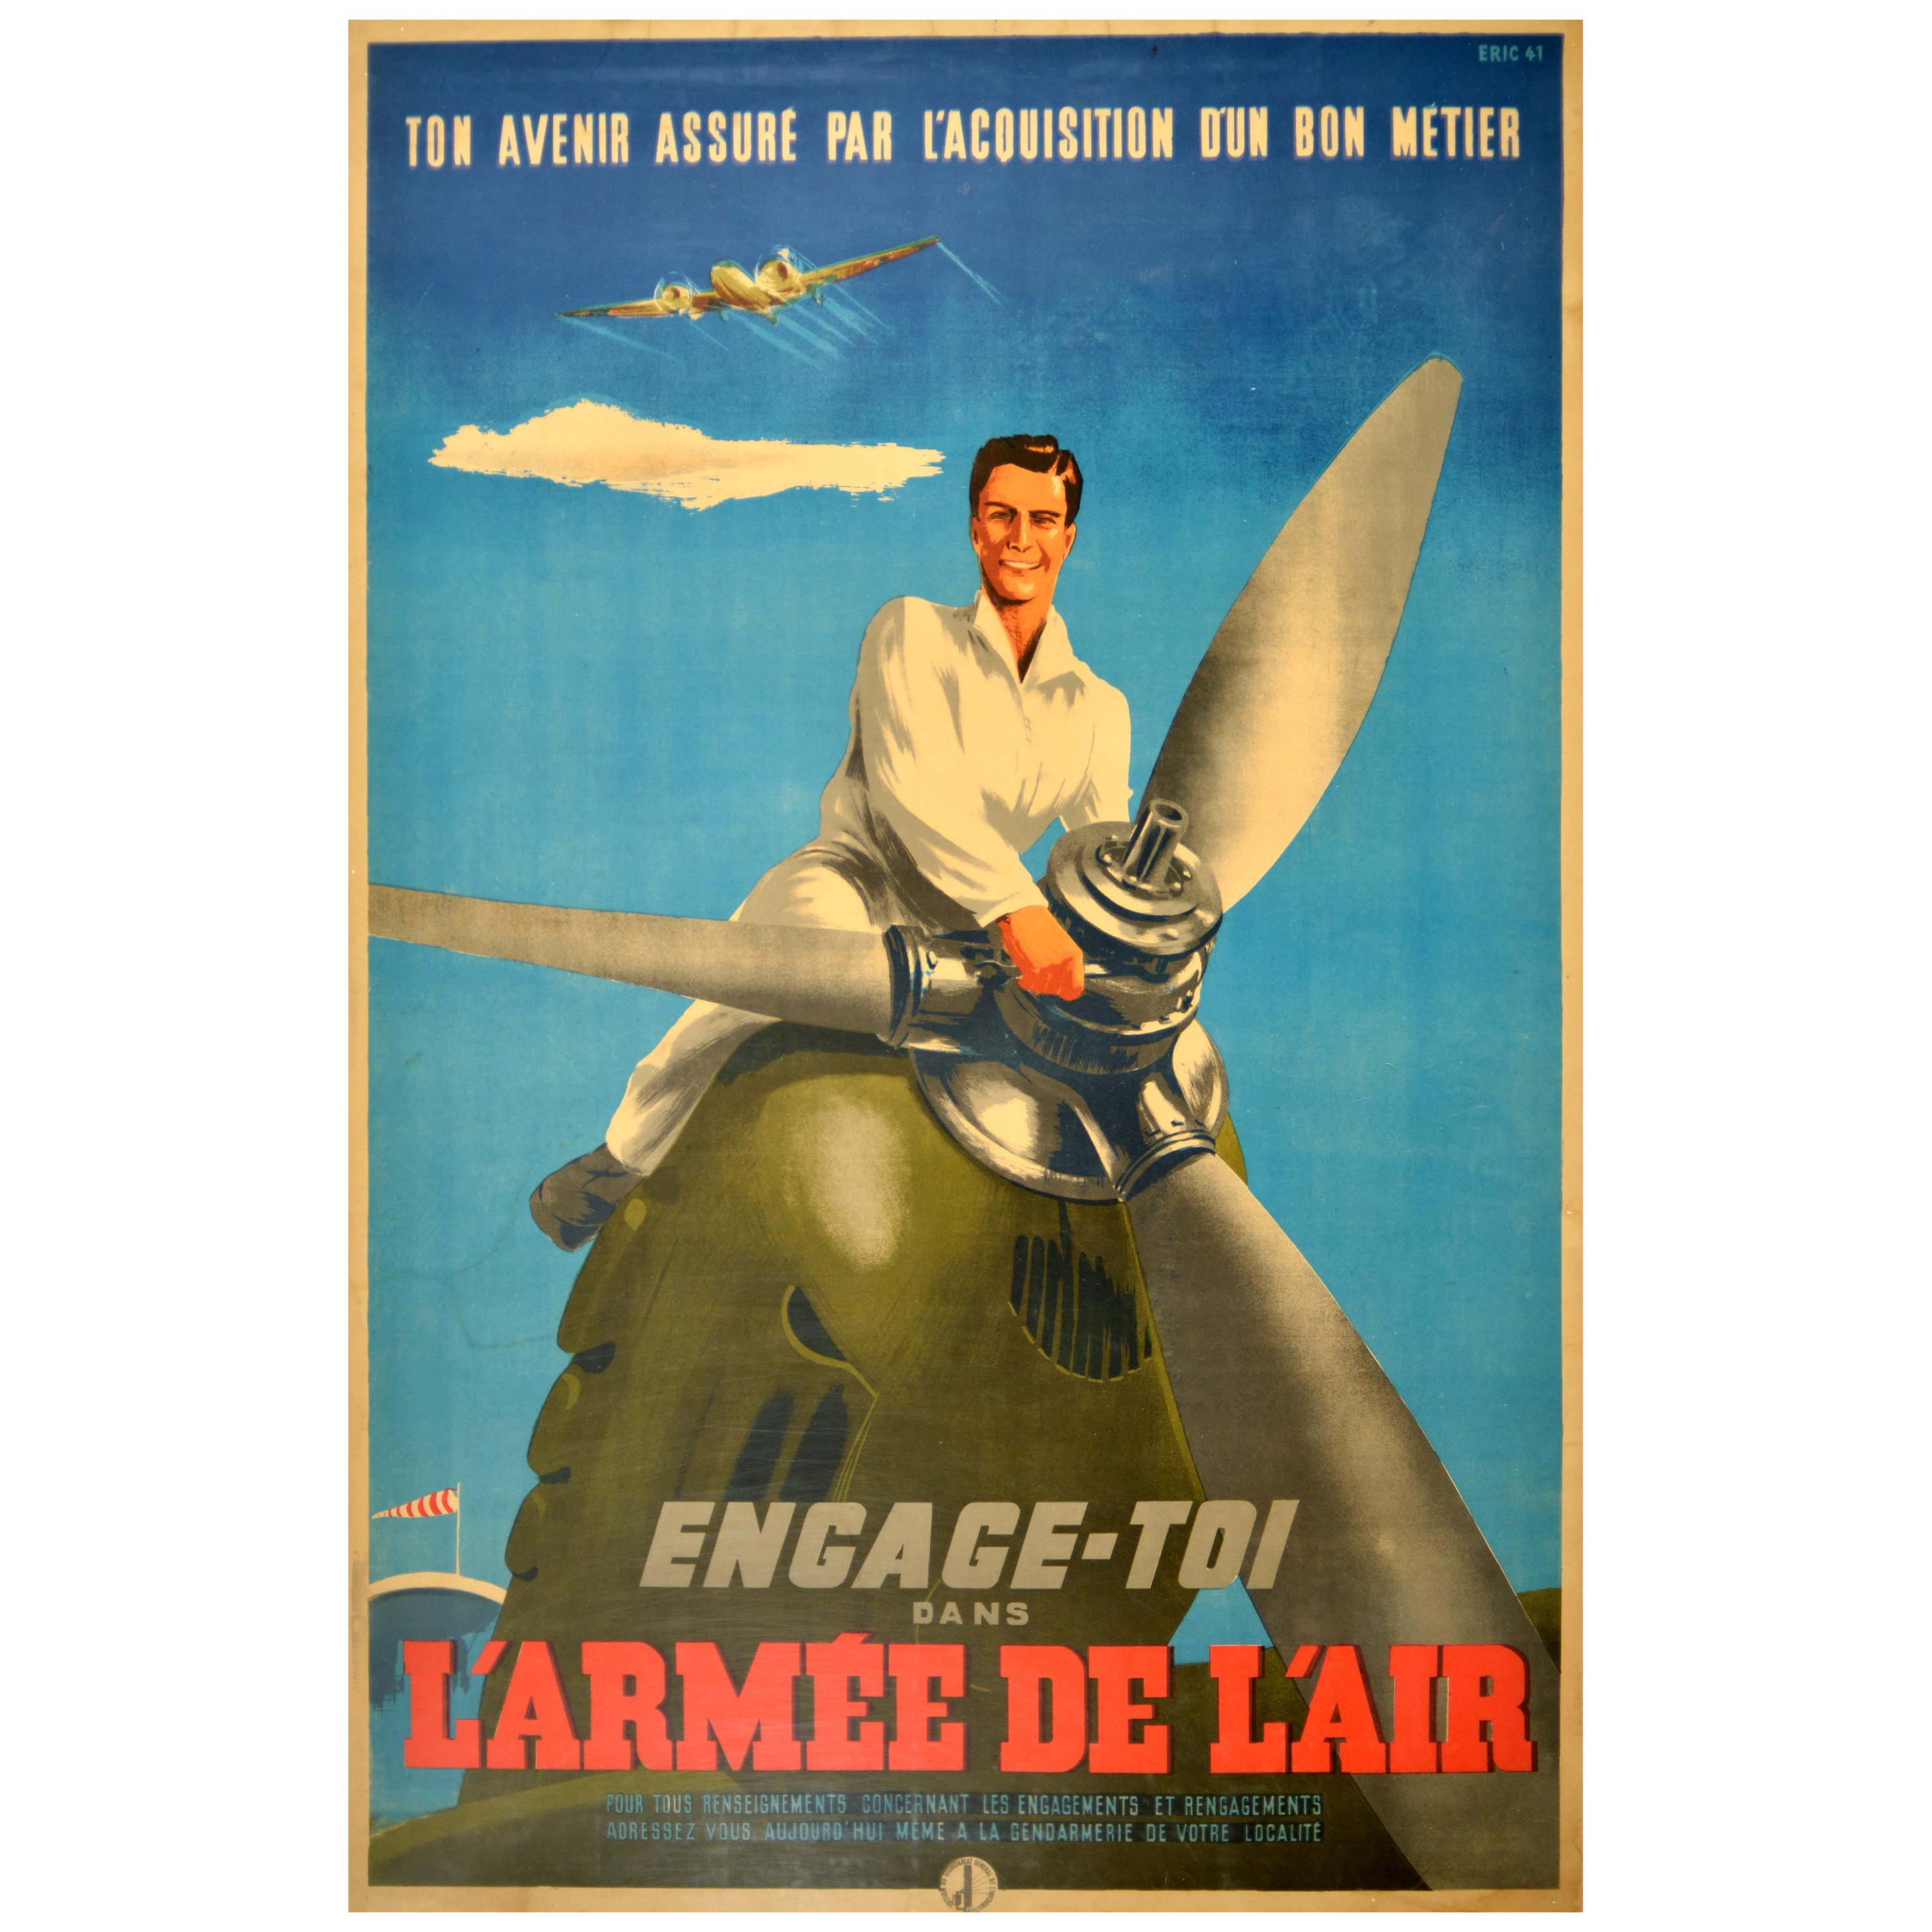 Original Vintage WWII Poster Armee De L'Air Force France Military Recruitment